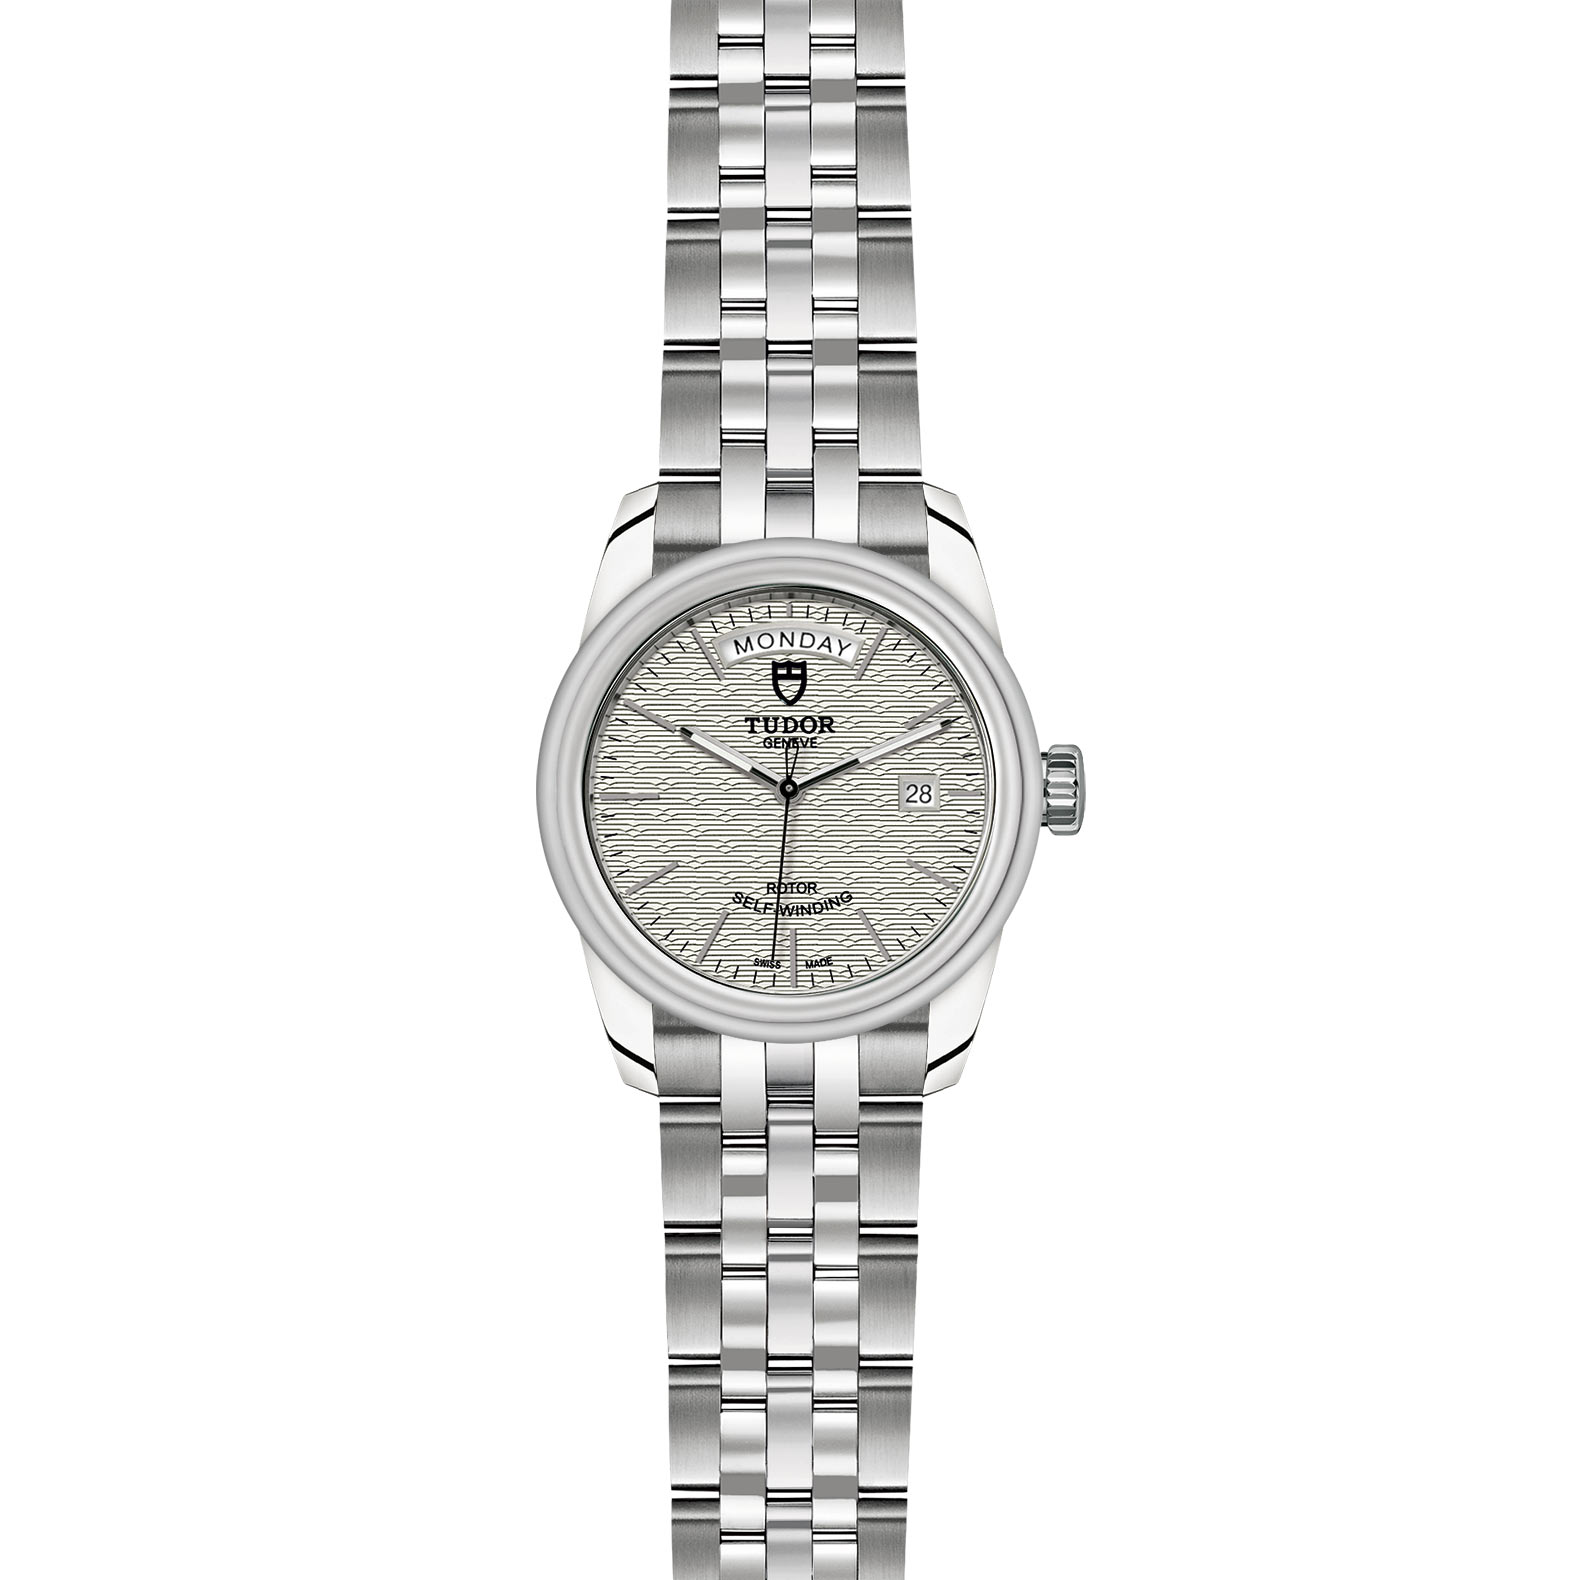 TUDOR Glamour Date Day M56000 0003 Frontfacing